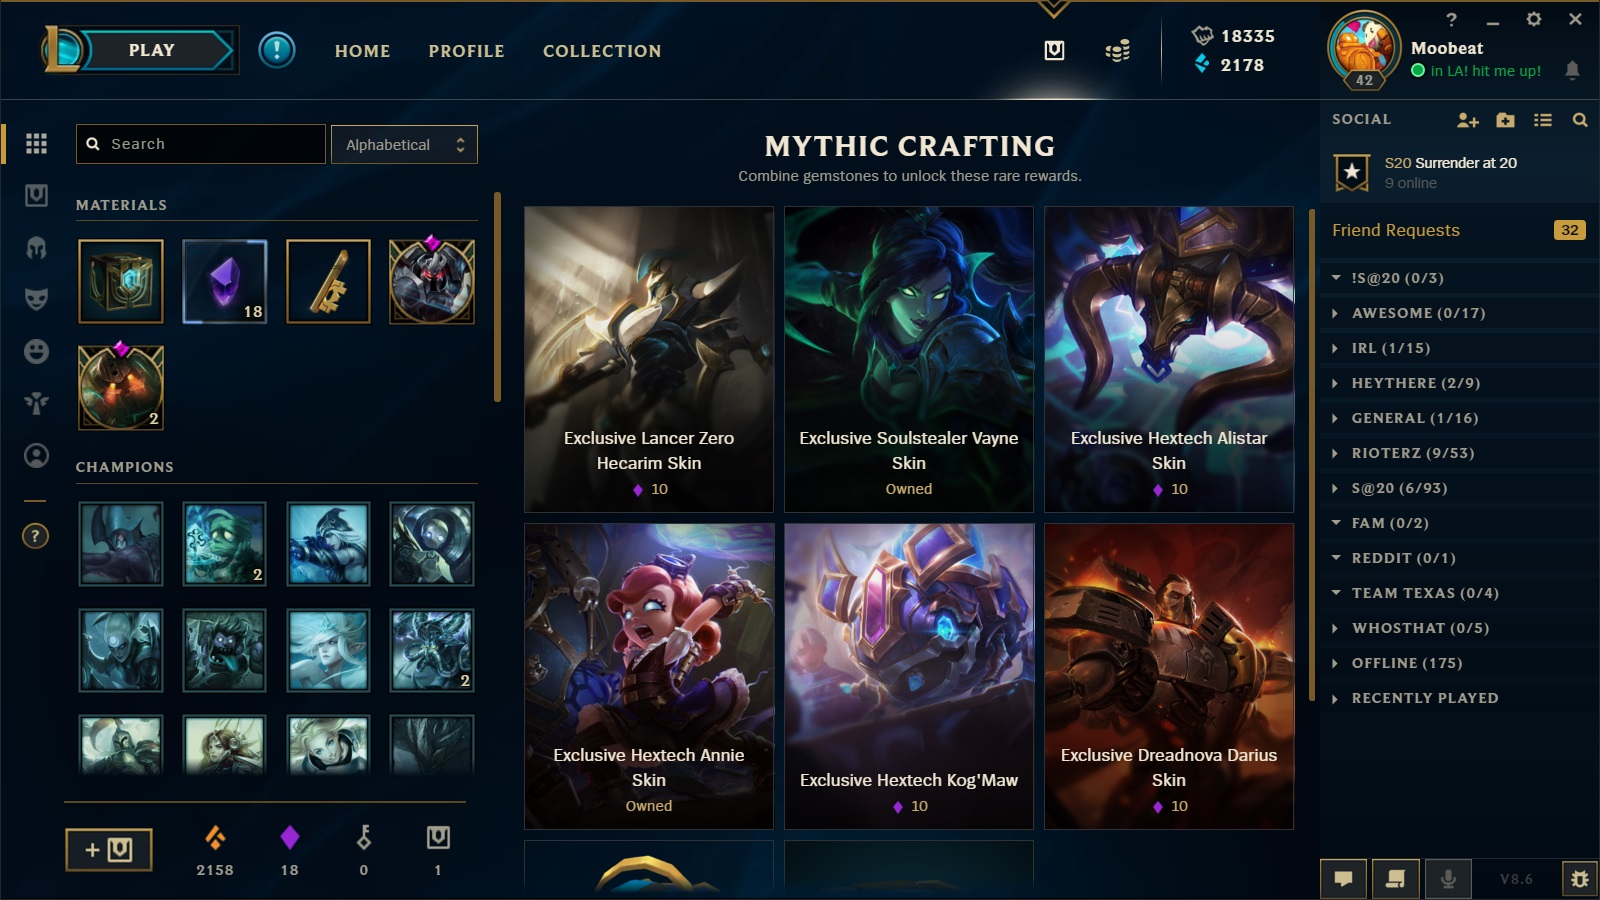 You can craft this skin for 10 gemstones, simply click the gemstones in  your inventory to access mythic crafting and select Hextech Alistar.